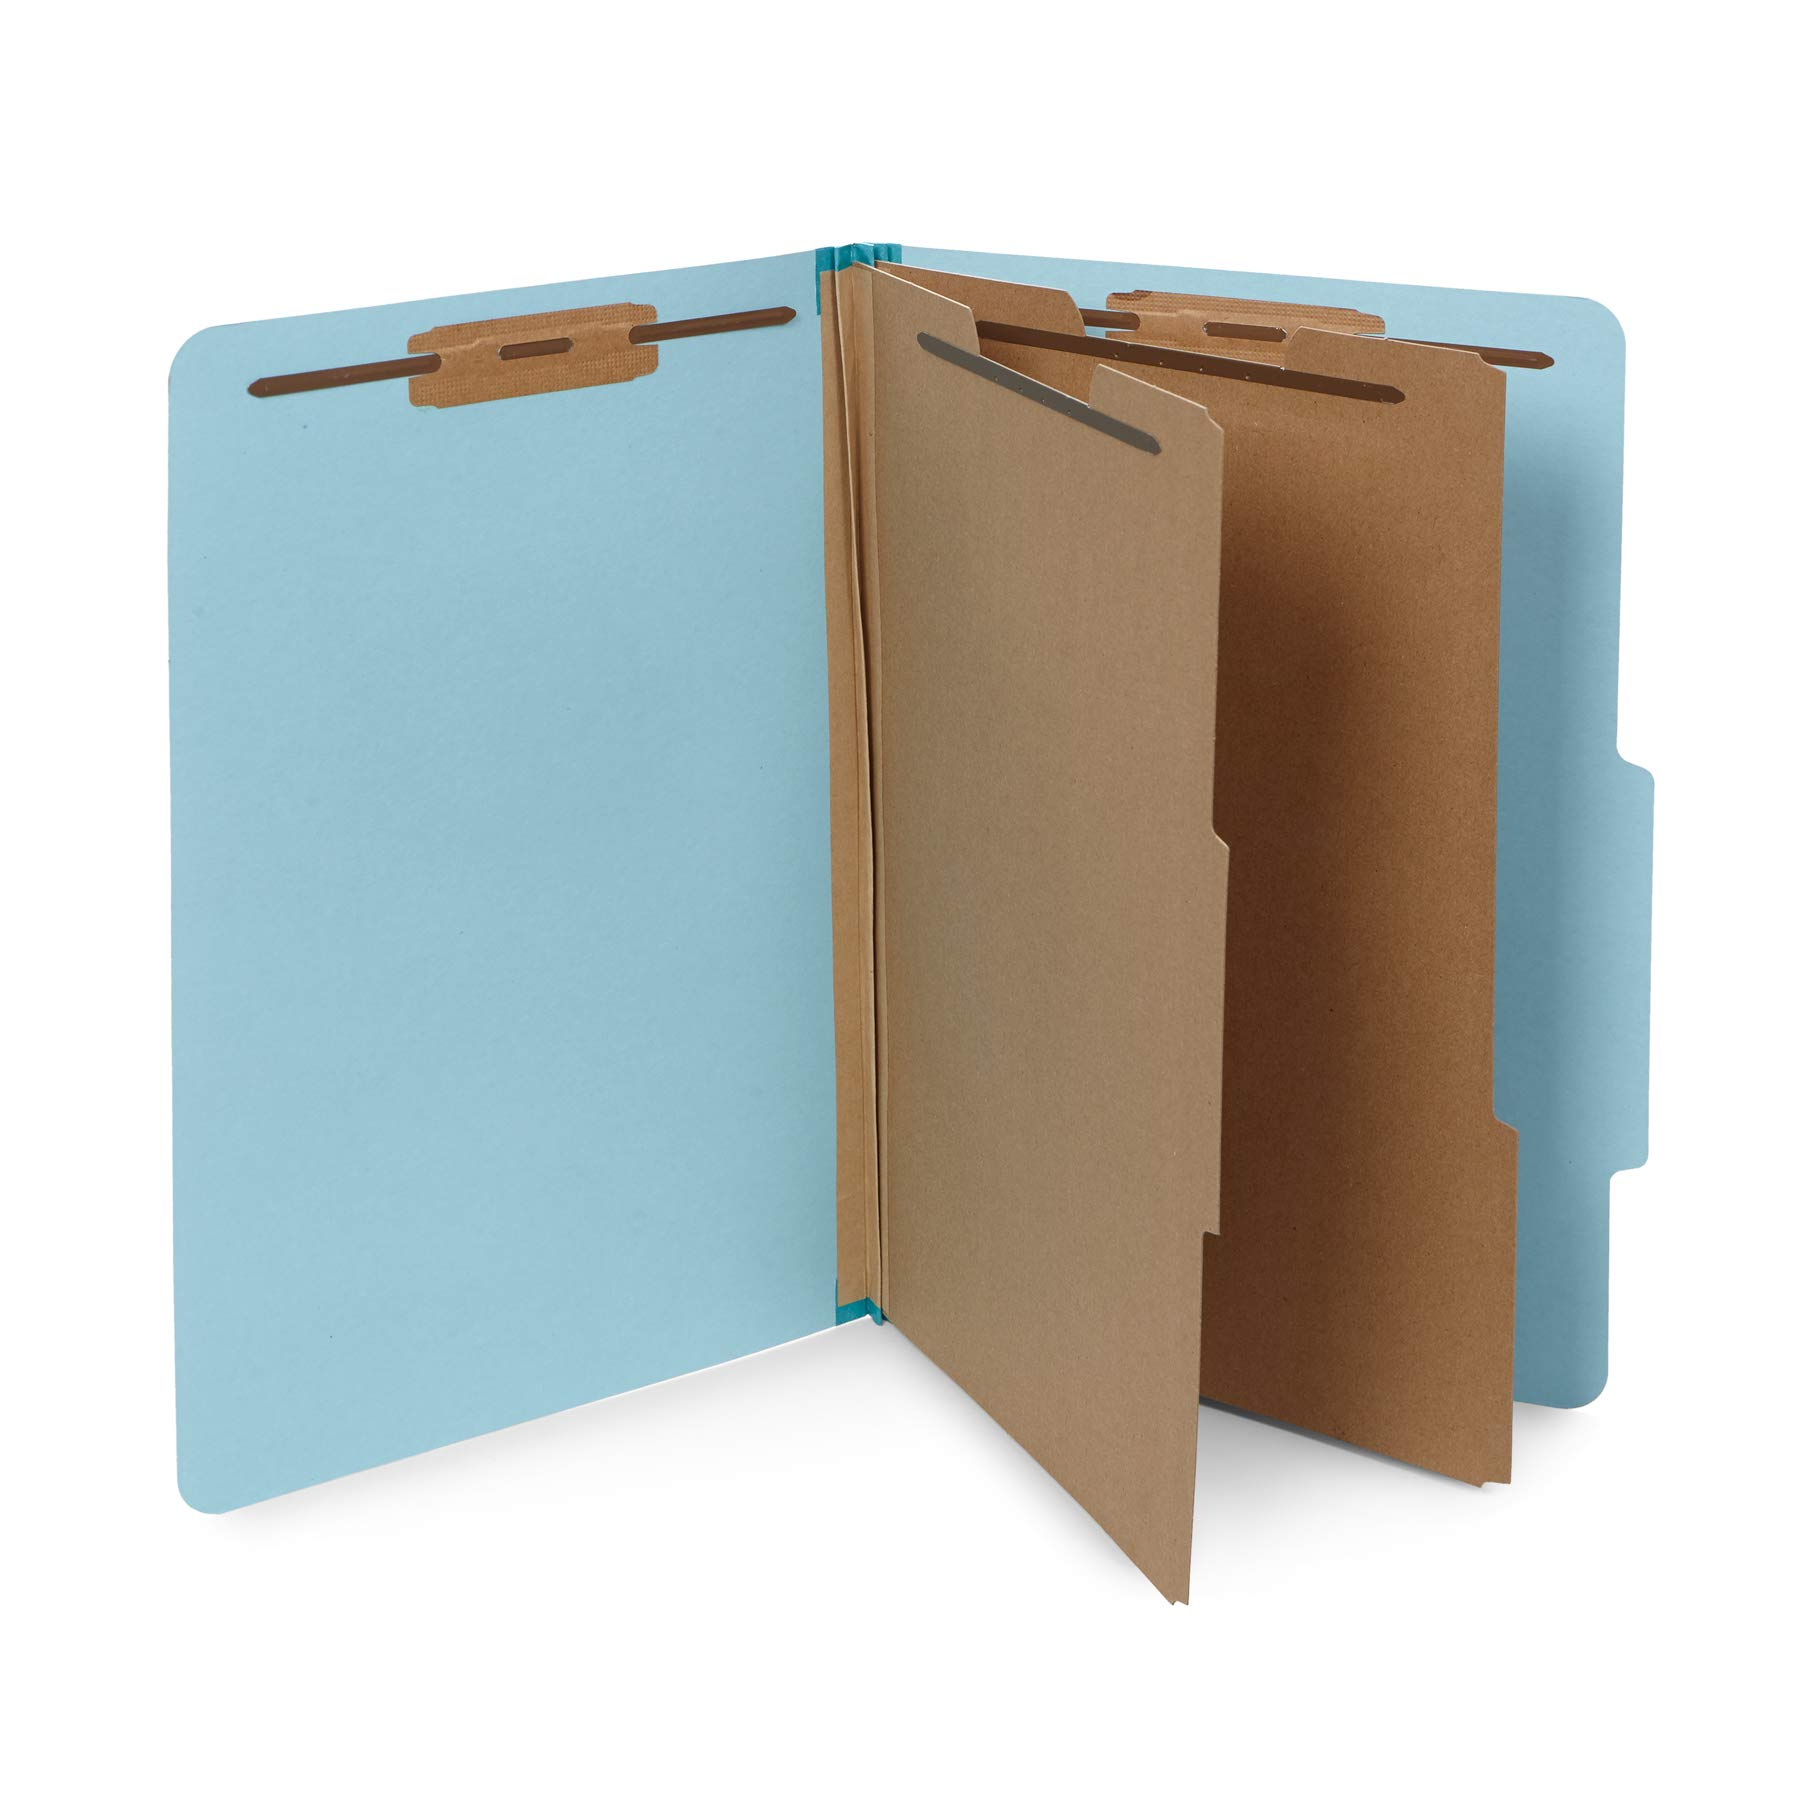 10 Blue Legal Size Classification Folders - 2 Divider 2 Inch Tyvek expansions - Durable 2 Prongs Designed to Organize Standard Law Client Files, Office Reports - Legal Size, 8 3/4 x 14 3/4, 10 Folders by Blue Summit Supplies